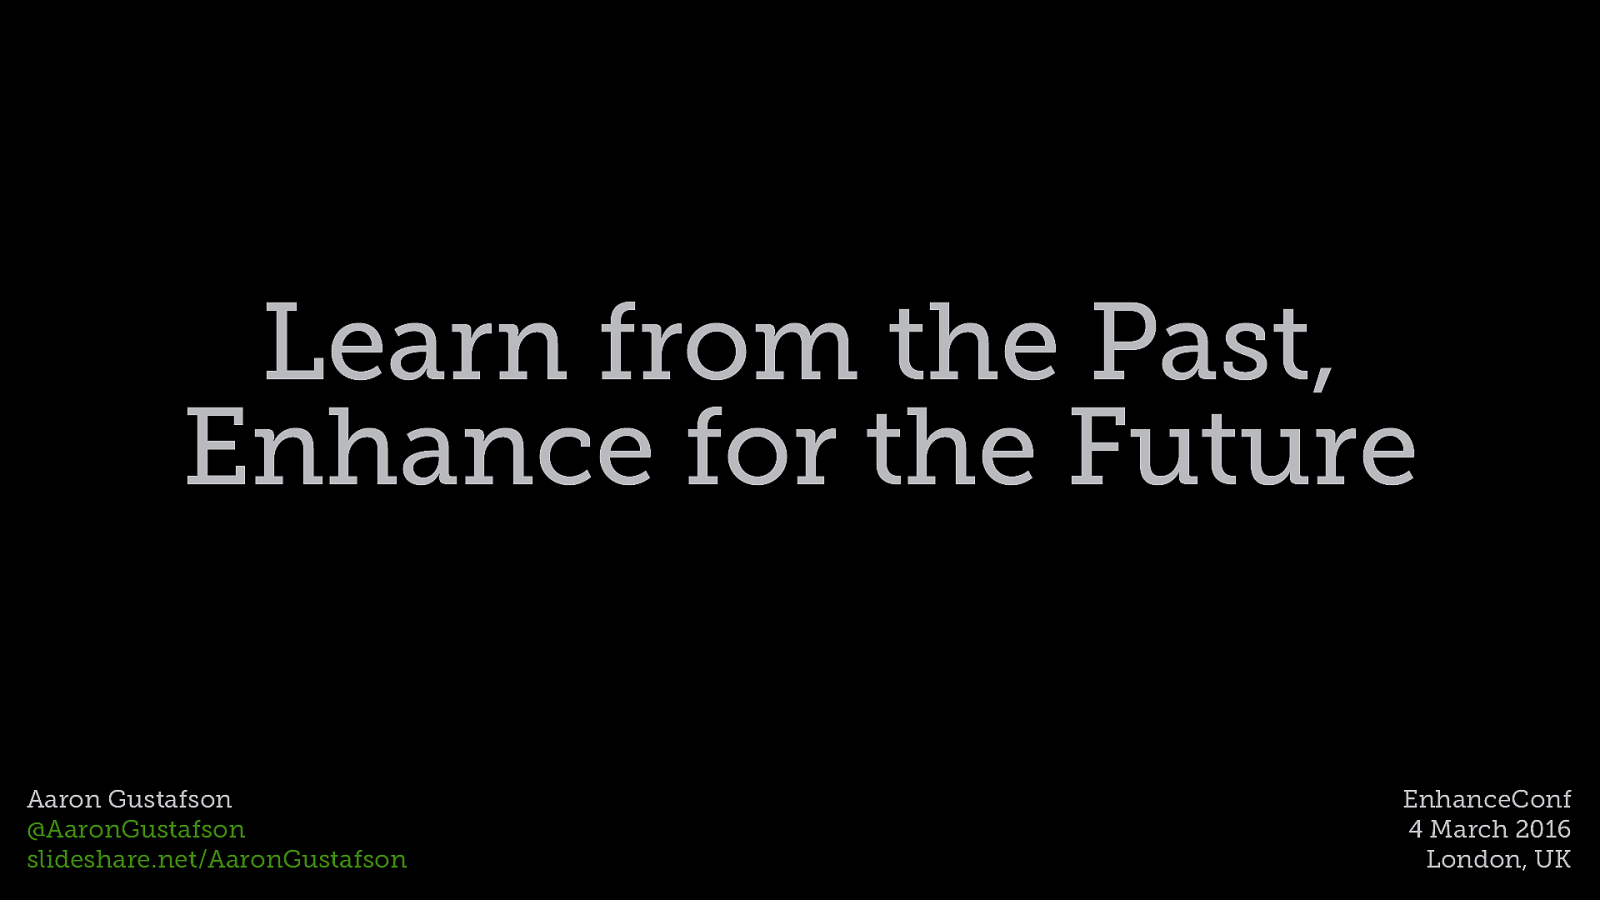 Learn From the Past, Enhance for the Future